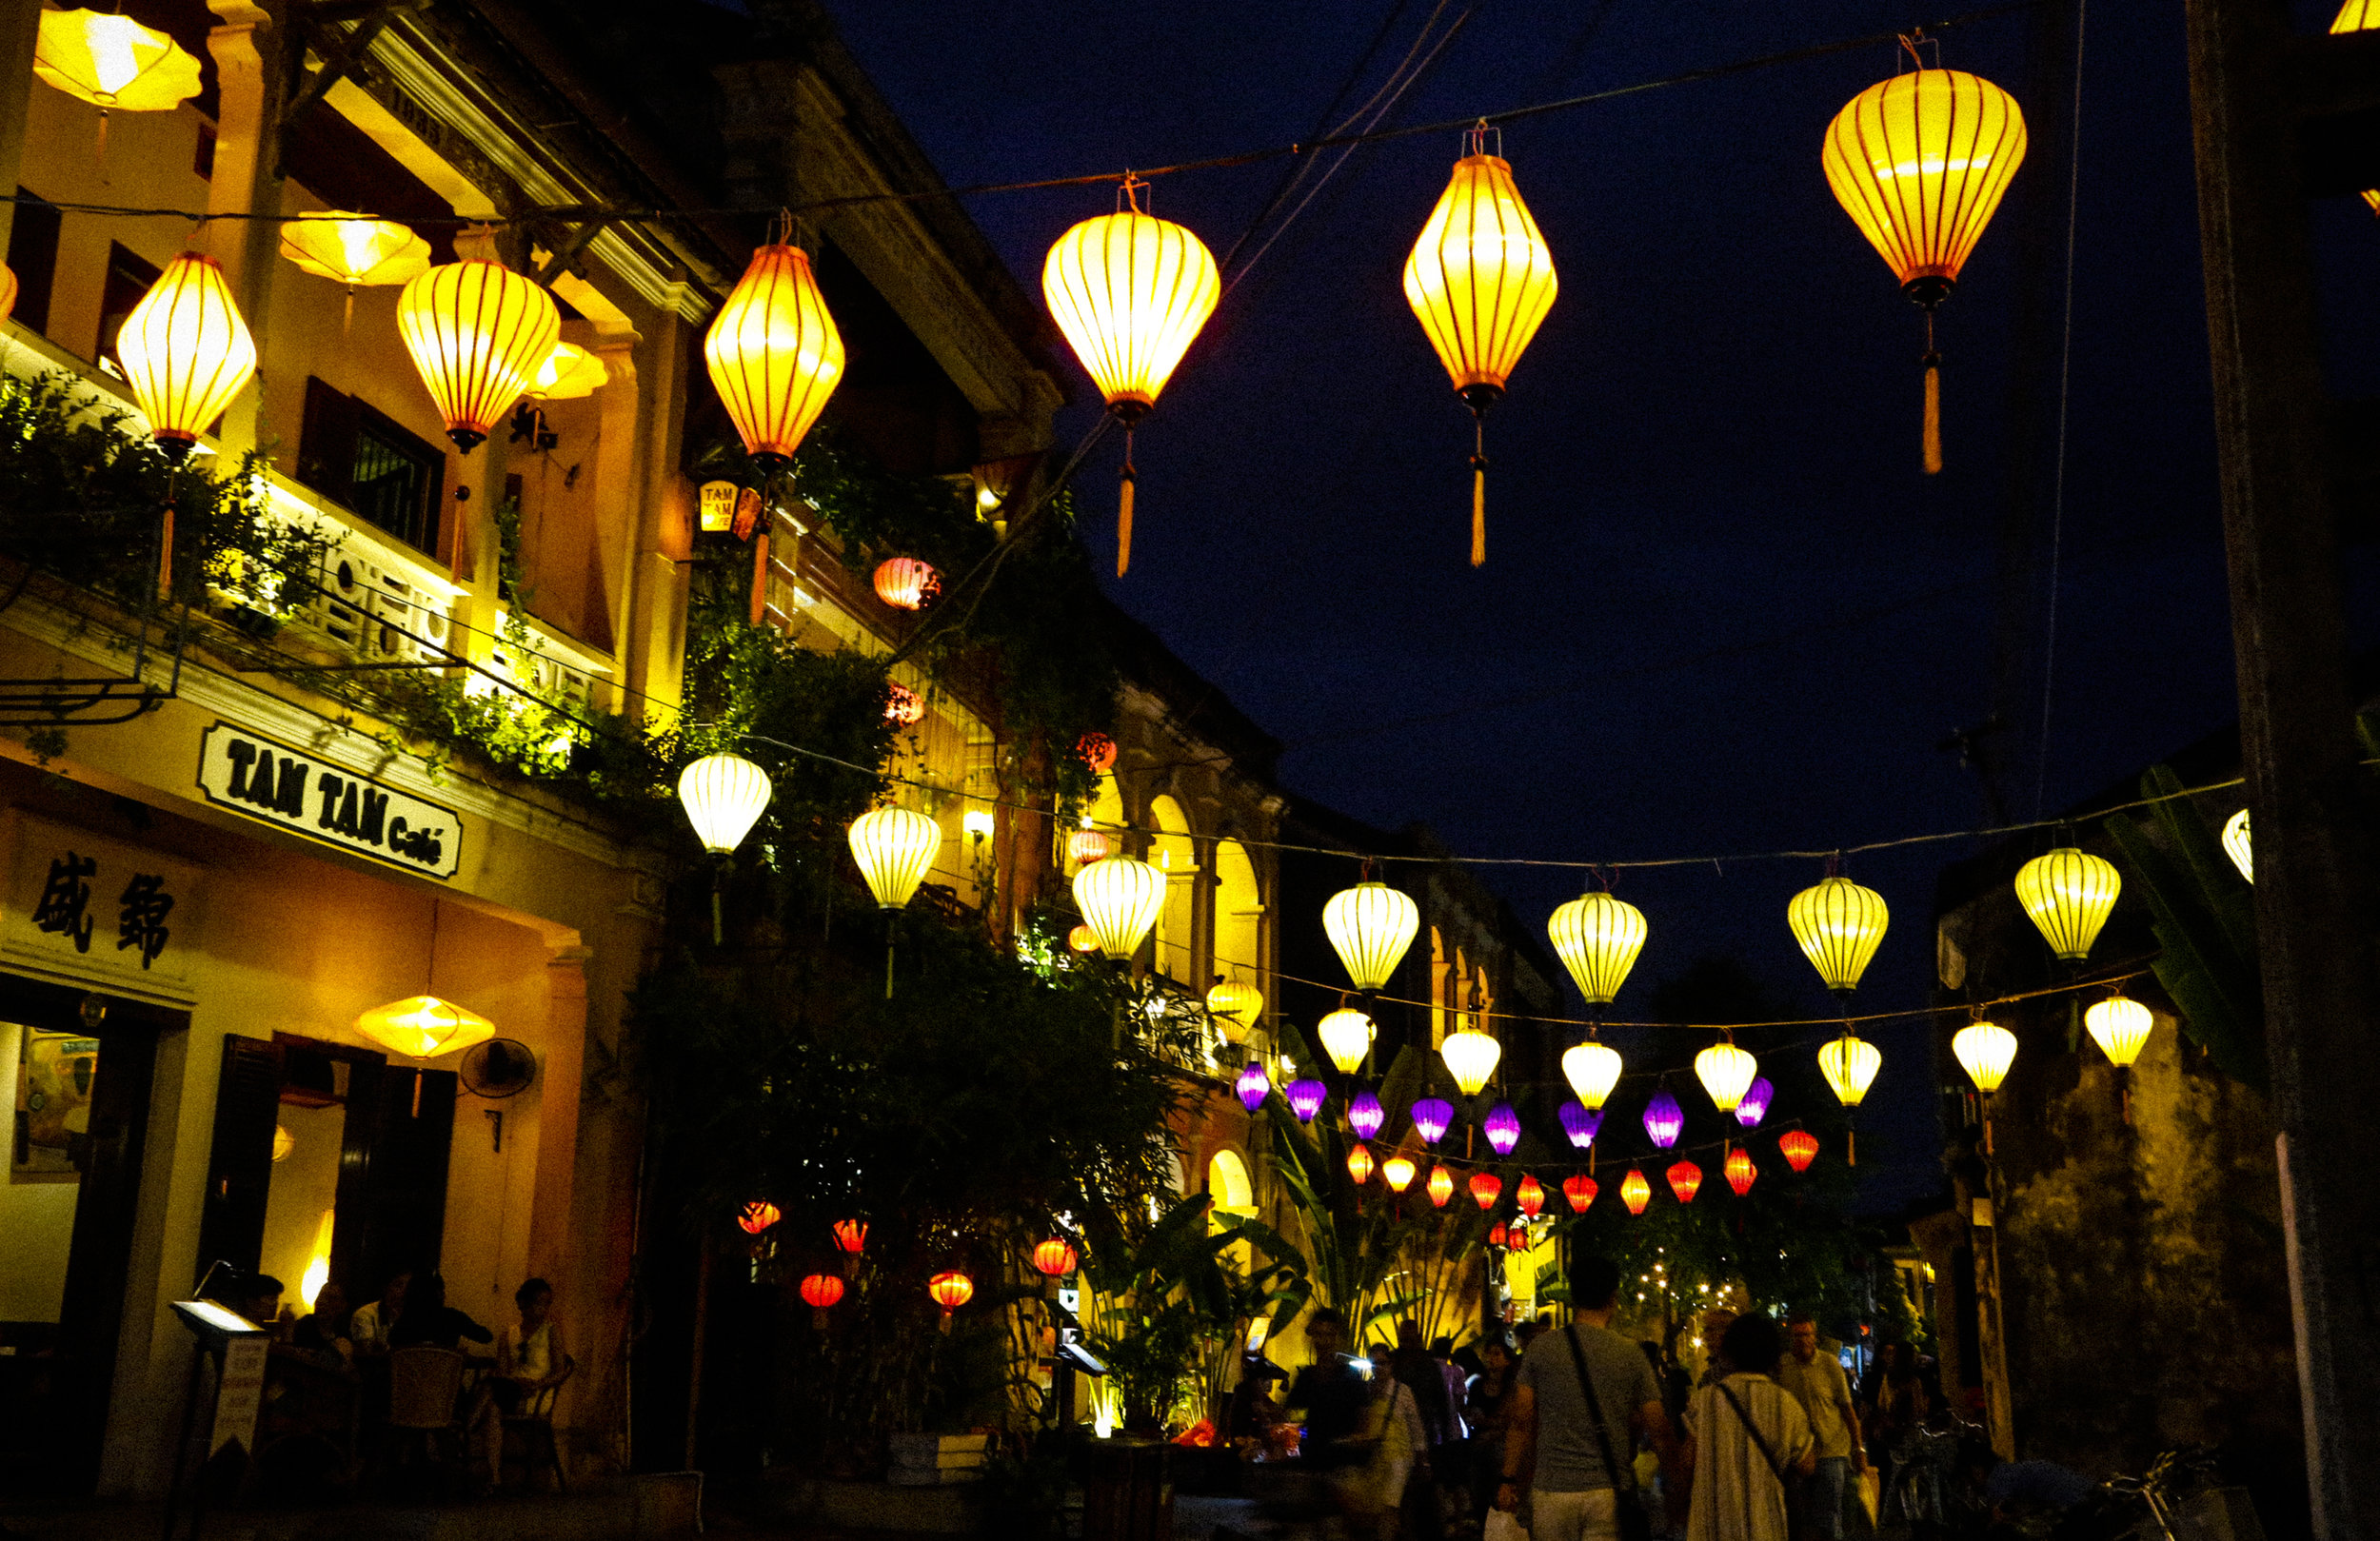 Streets of Hoi An at Night.